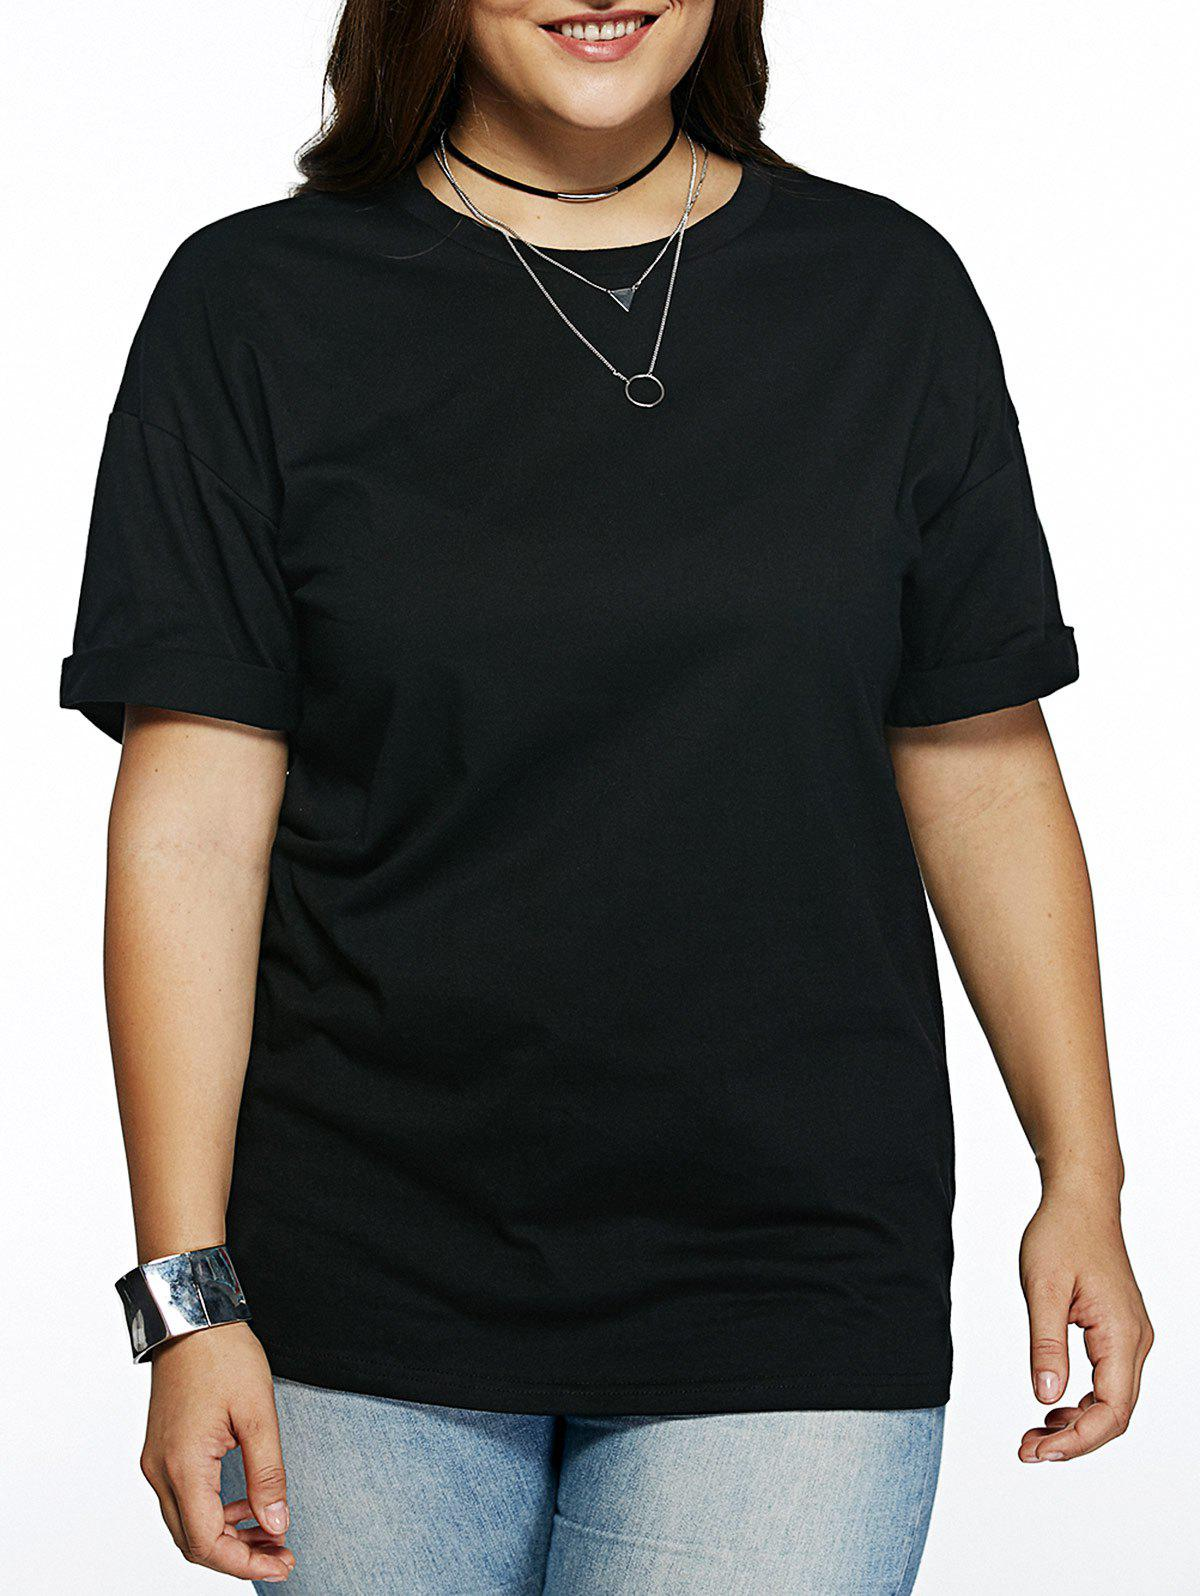 Plus Size Cuffed Sleeve Black T-Shirt